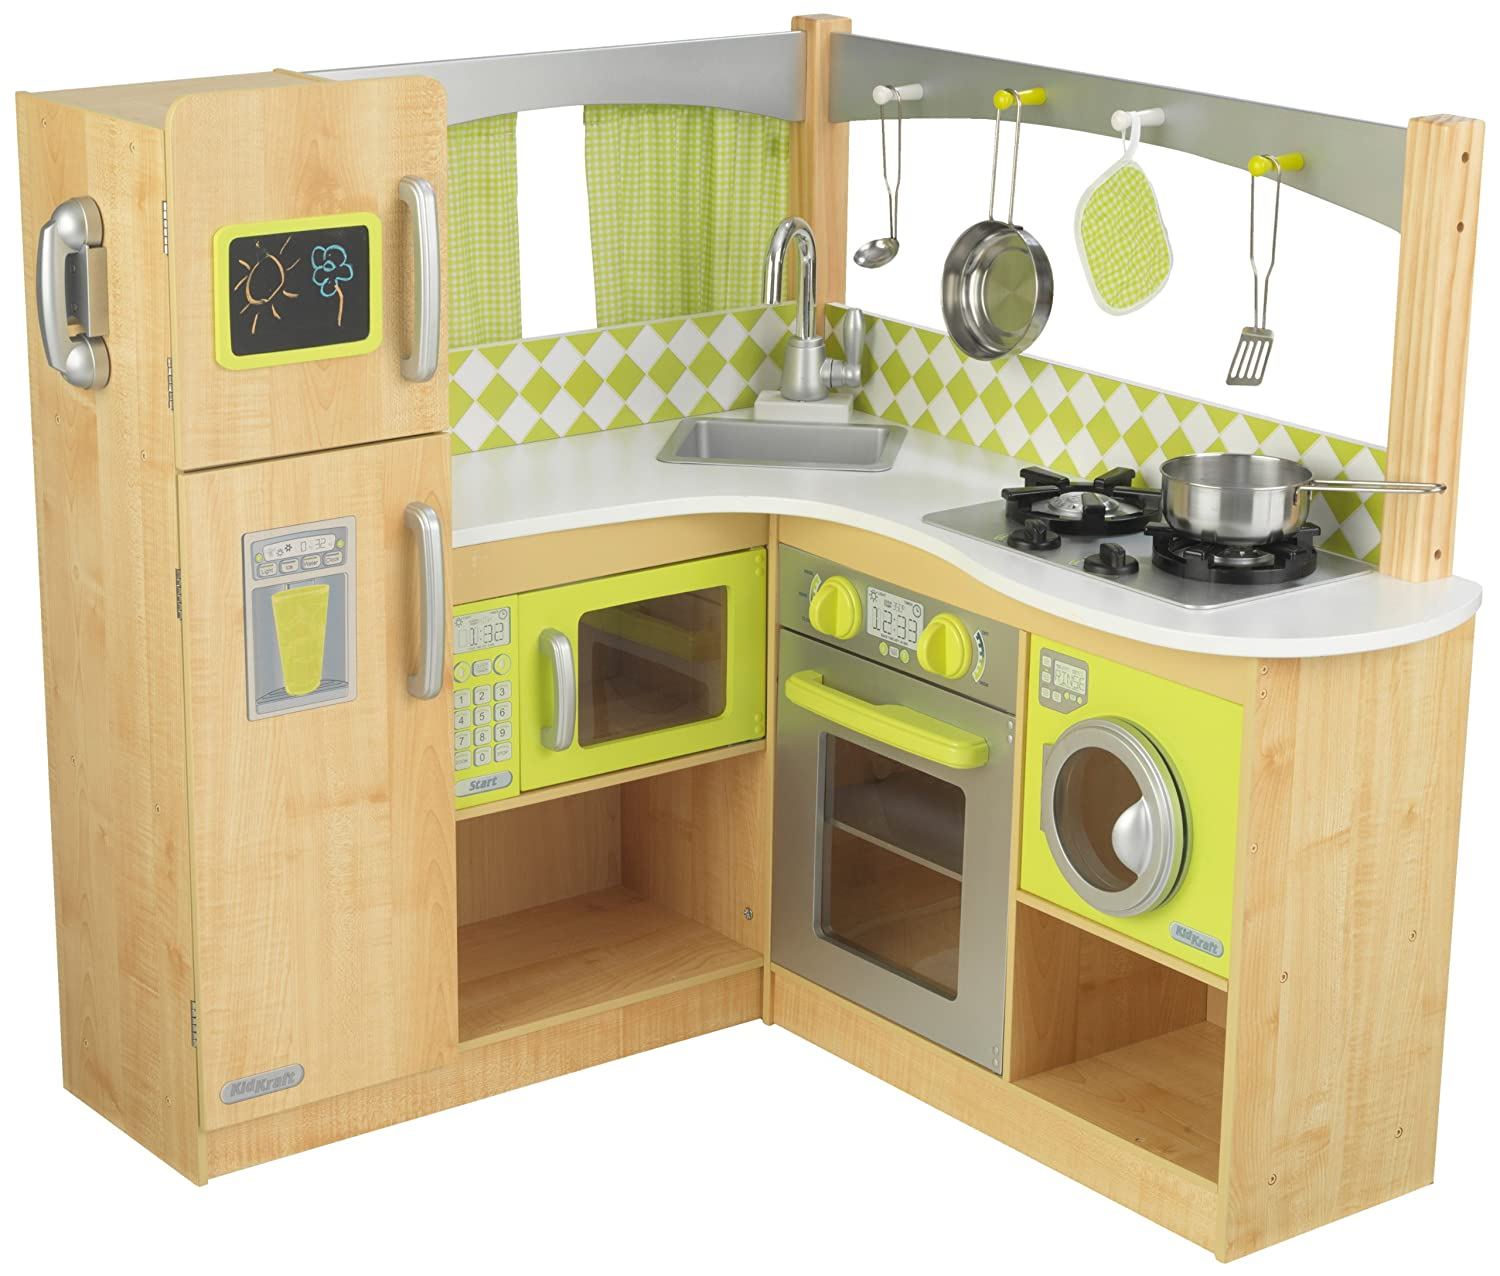 amazoncom new limited edition kidkraft wooden lime green corner  - amazoncom new limited edition kidkraft wooden lime green corner kitchentoys  games